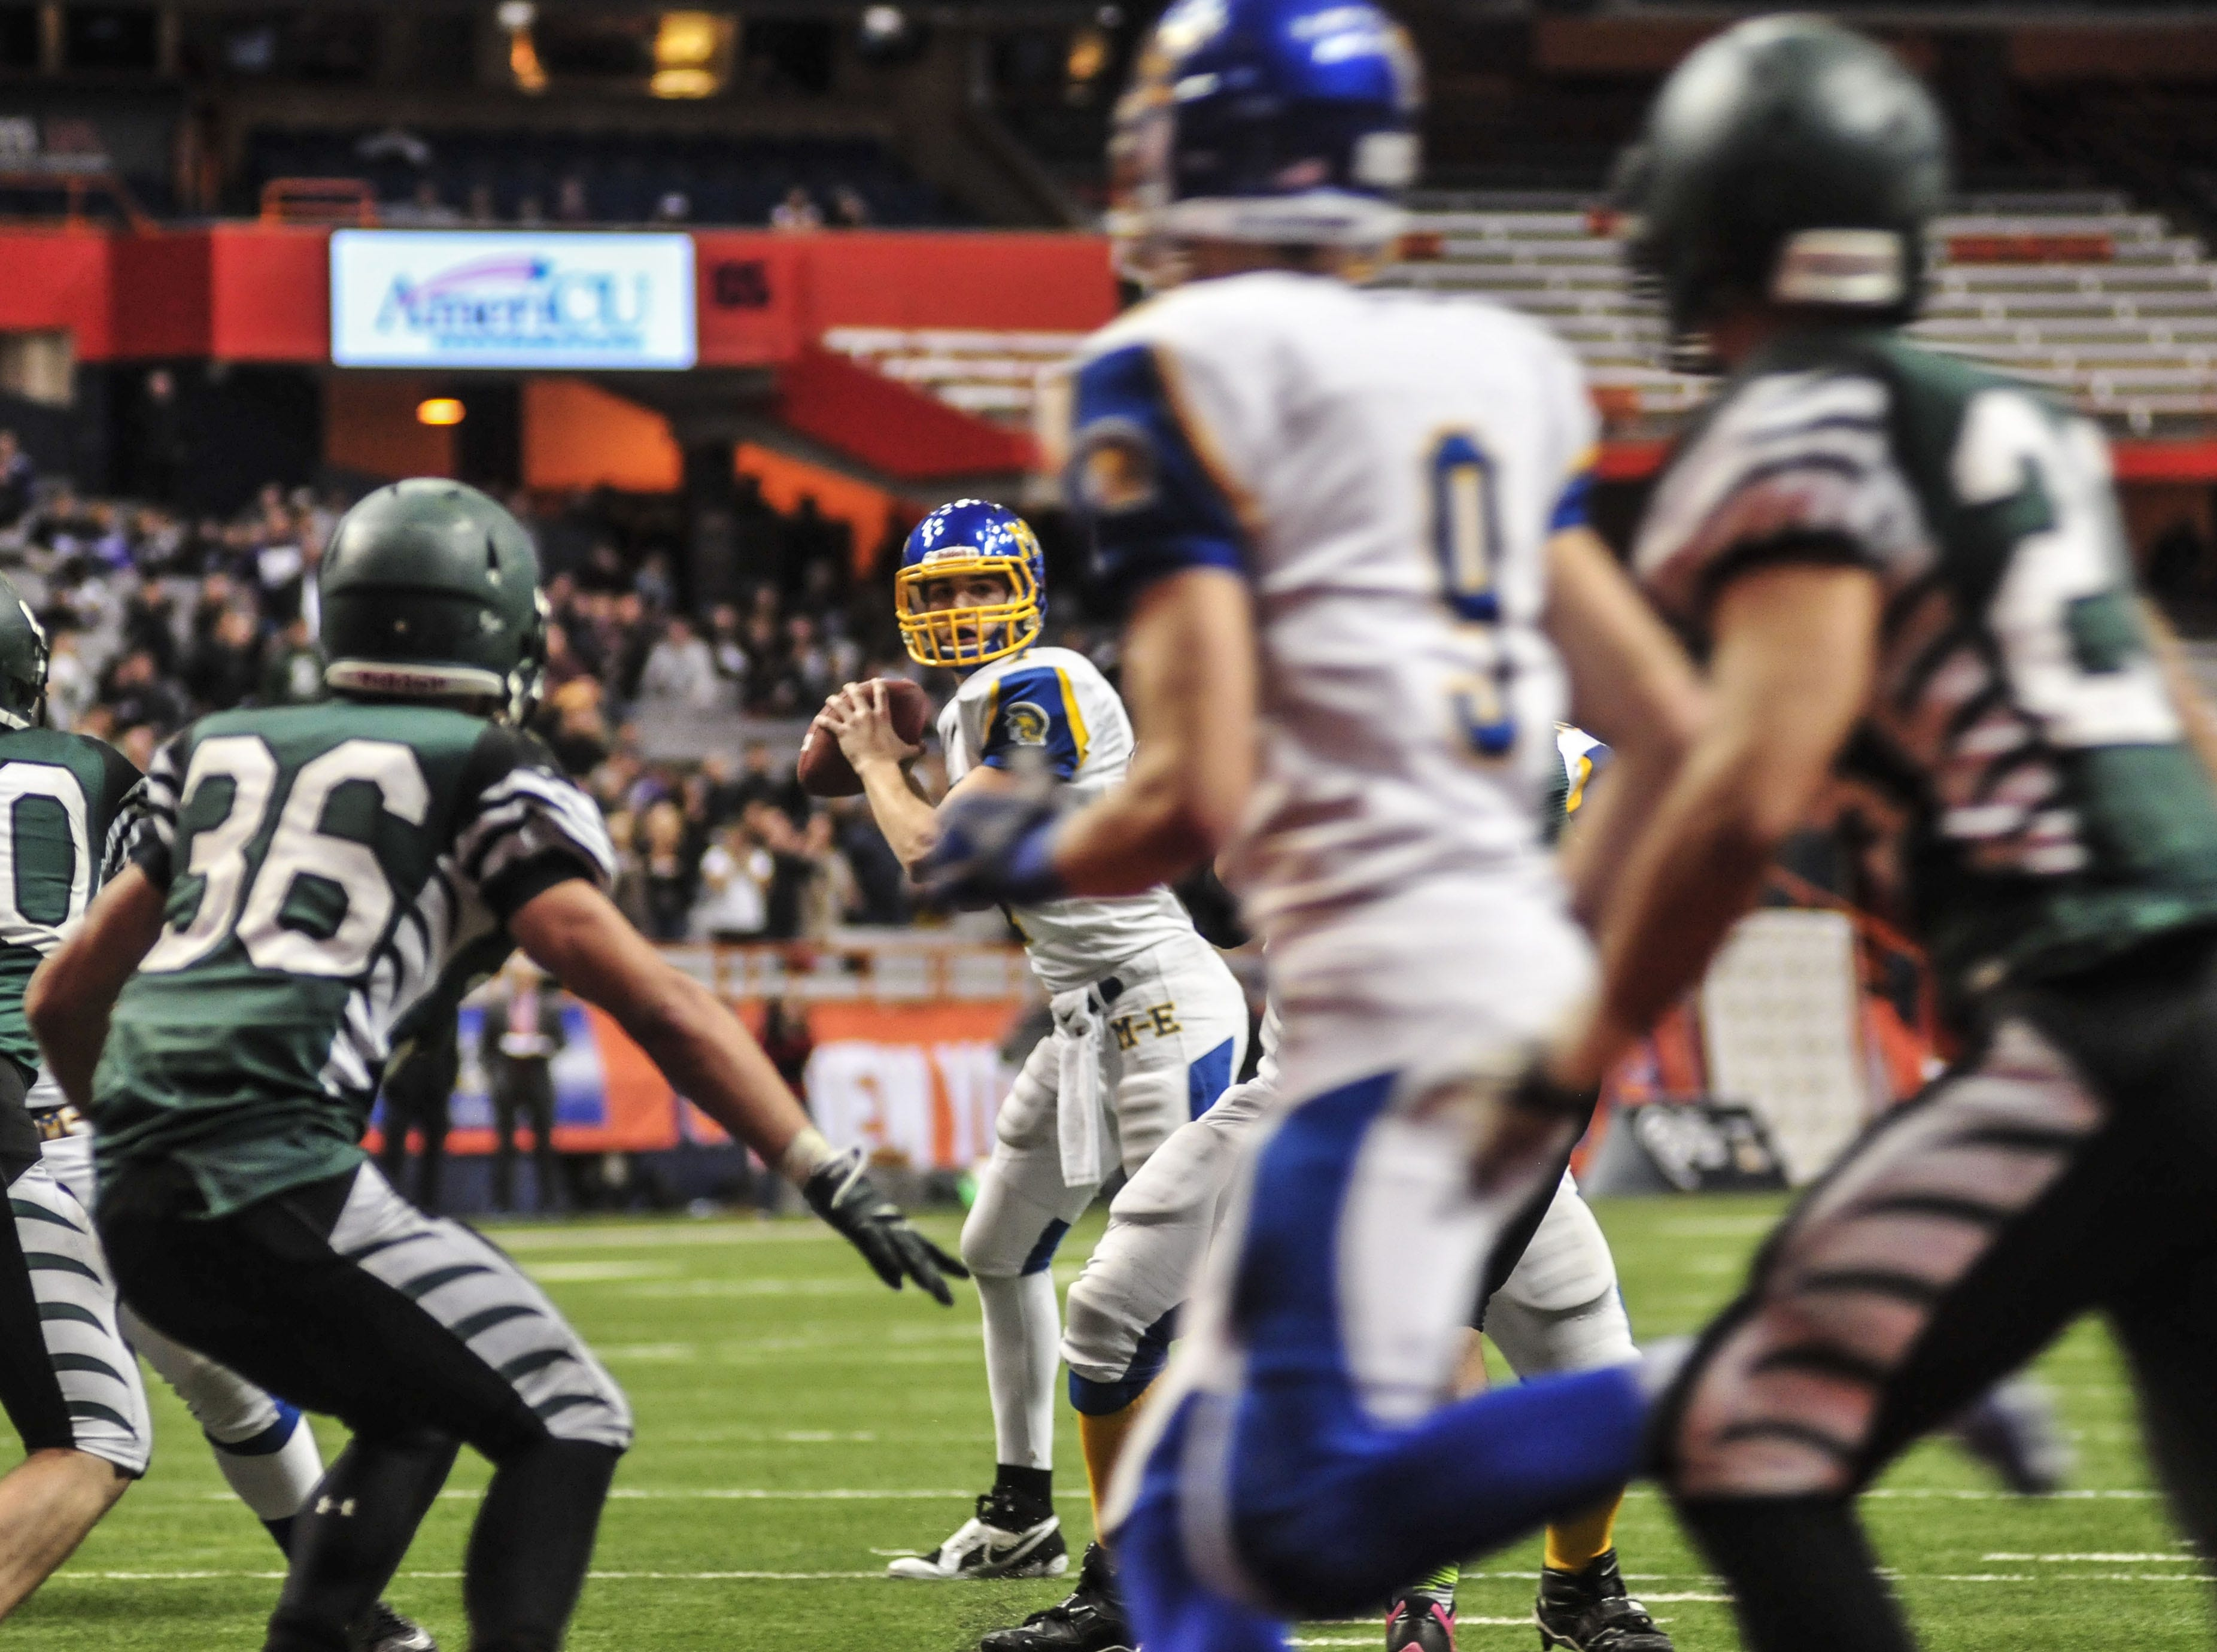 Maine-Endwell's Kyle Gallagher targets Jake Sinicki in the end zone to bring the score to 20-21 against Schalmont Endwell during the 2013 New York State Public High School Athletic Association Football Class B Championship at the Carrier Dome.